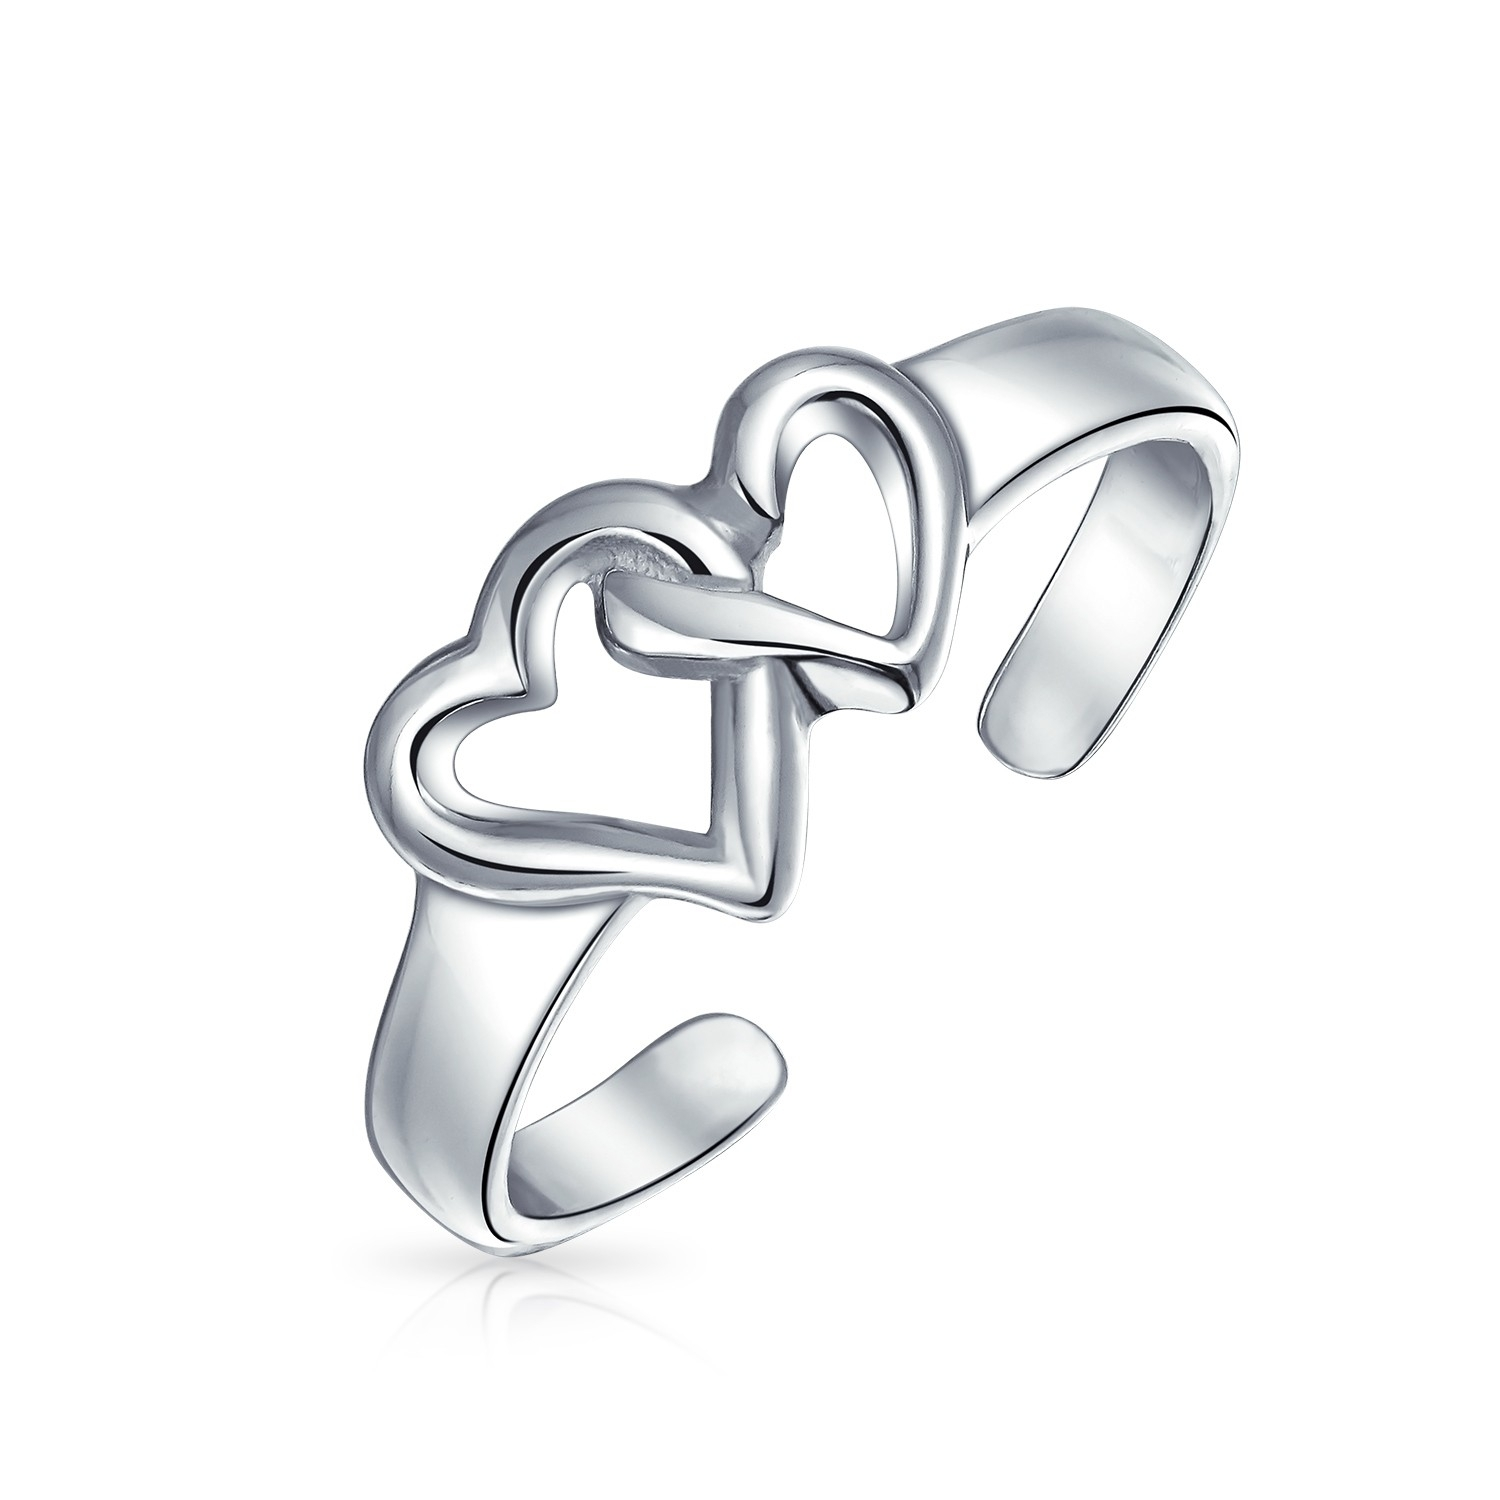 Adjustable Double Open Heart Midi Ring Sterling Silver Toe Rings With Regard To Most Current Sterling Silver Toe Rings (View 5 of 15)